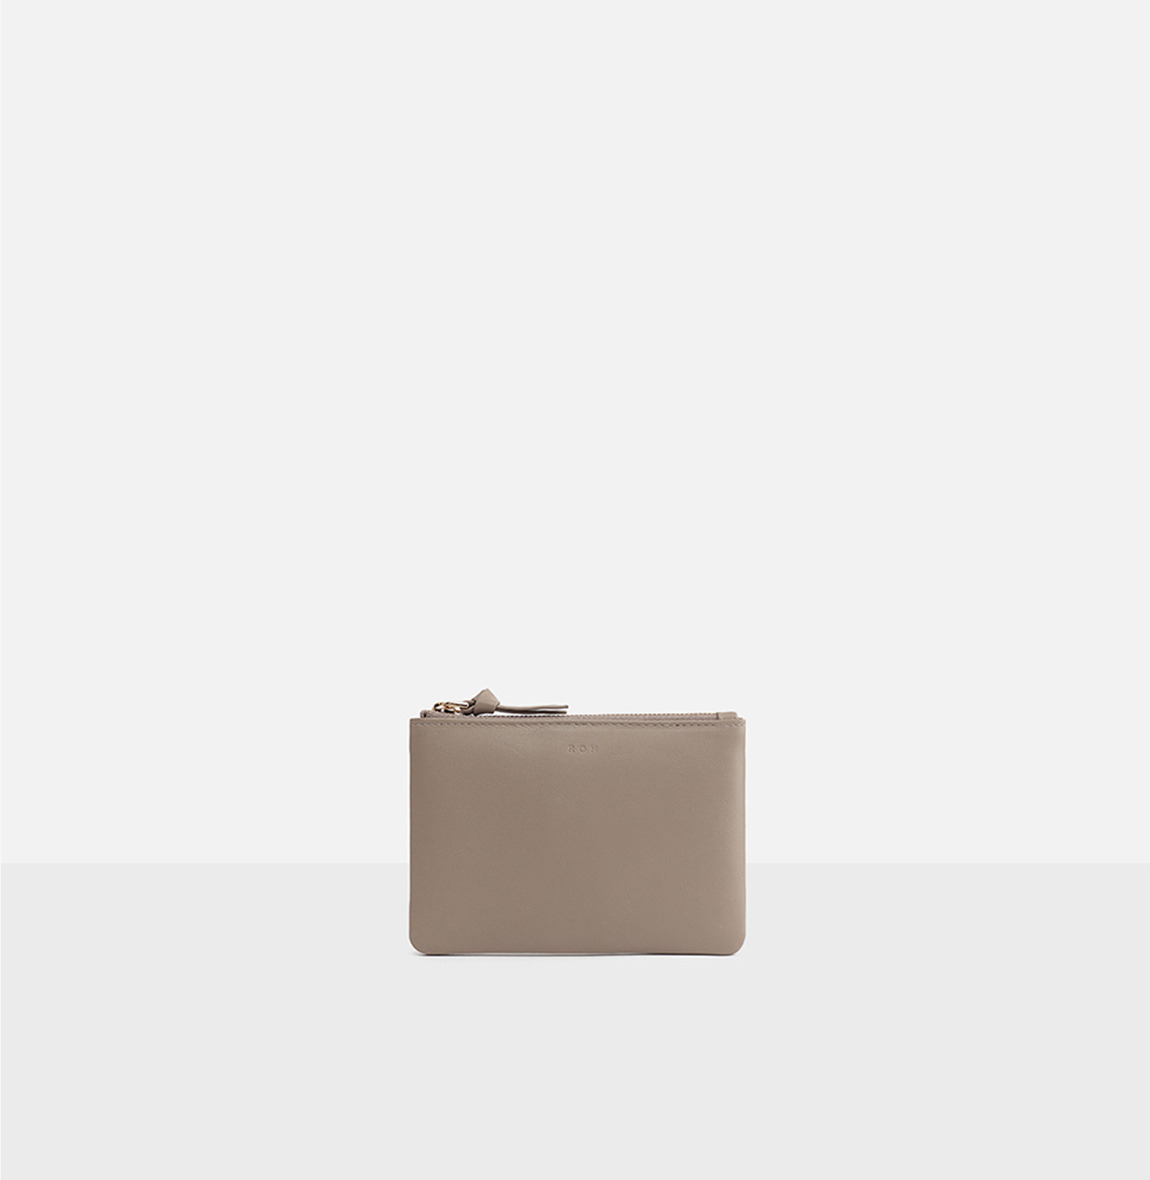 [Repurb]Square small zip wallet Beige